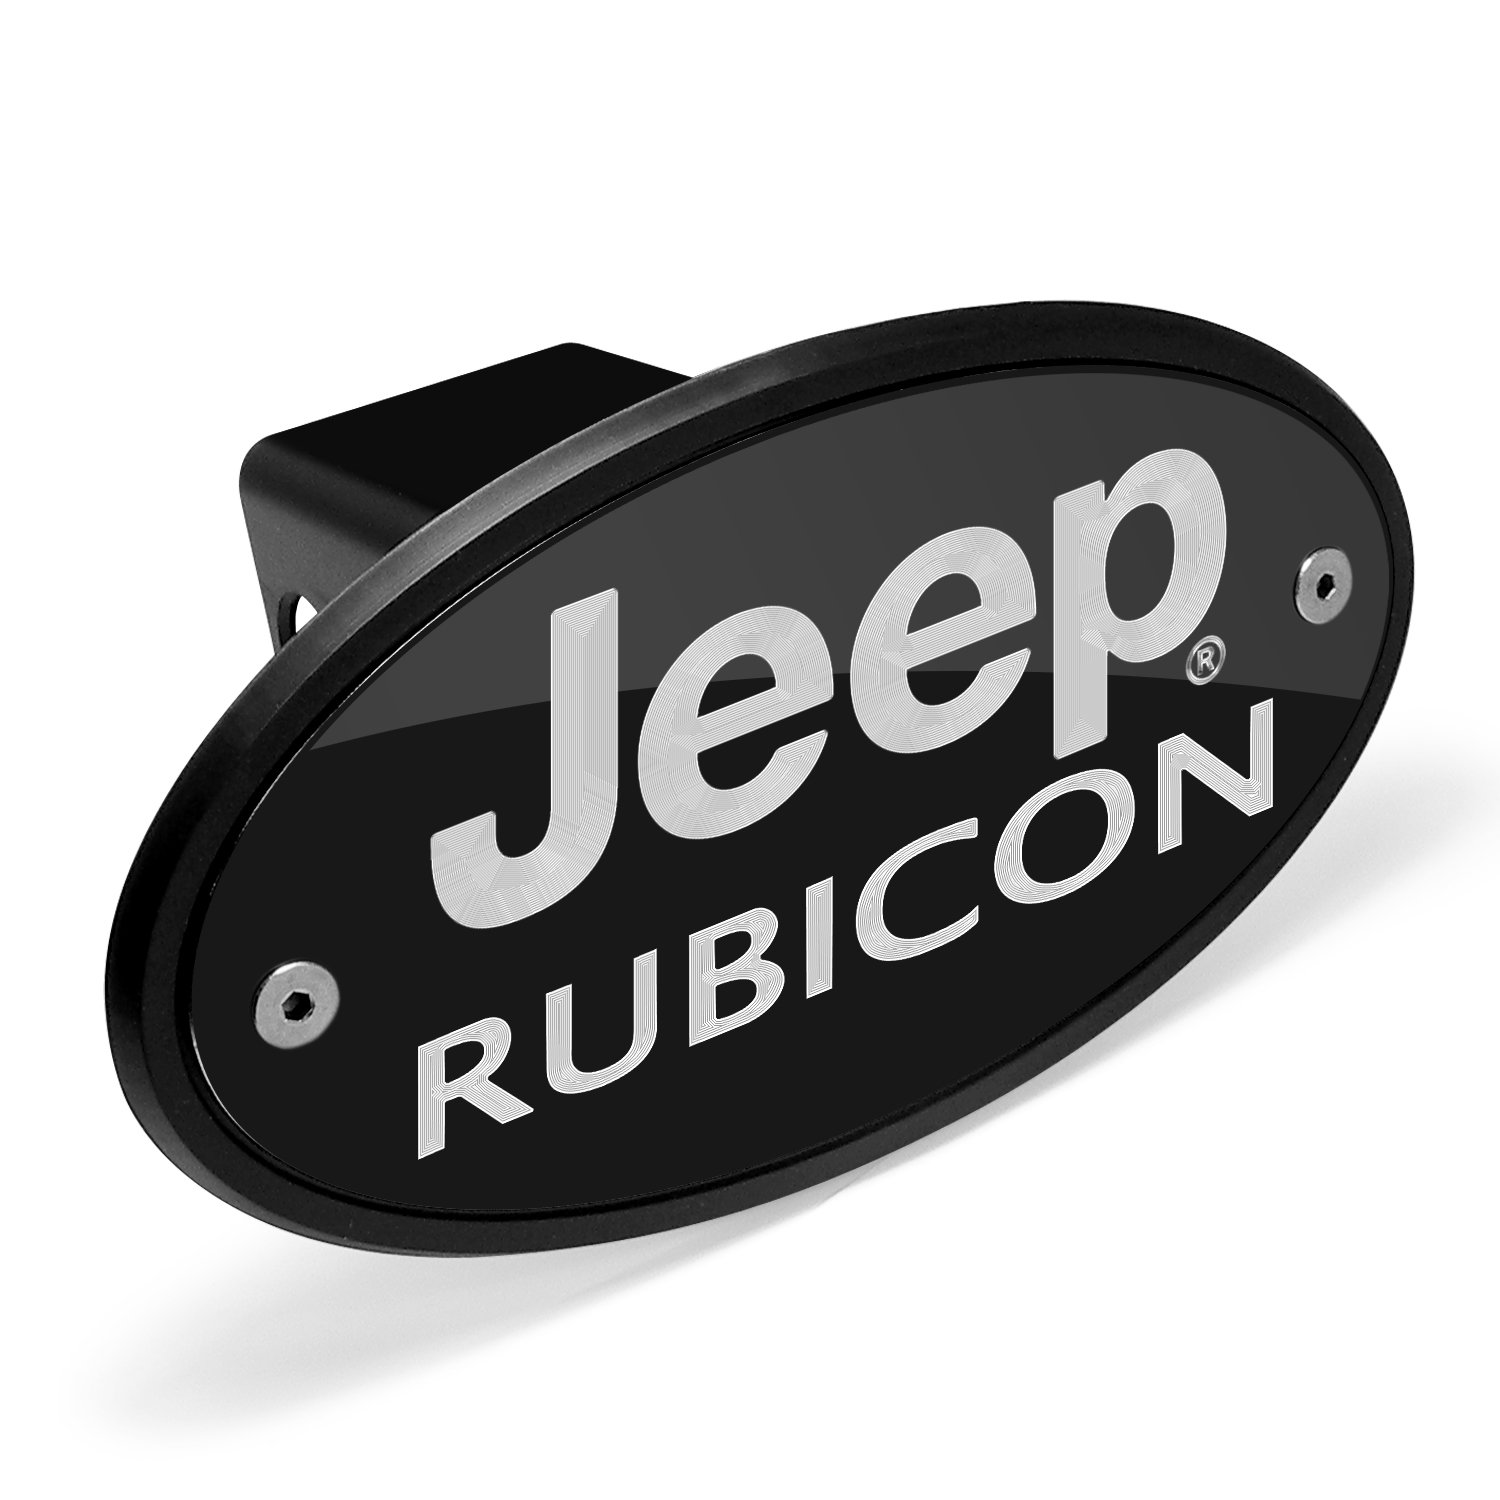 Jeep Rubicon Black Metal Plate 2 inch Tow Hitch Cover Universal Brass 4332984429